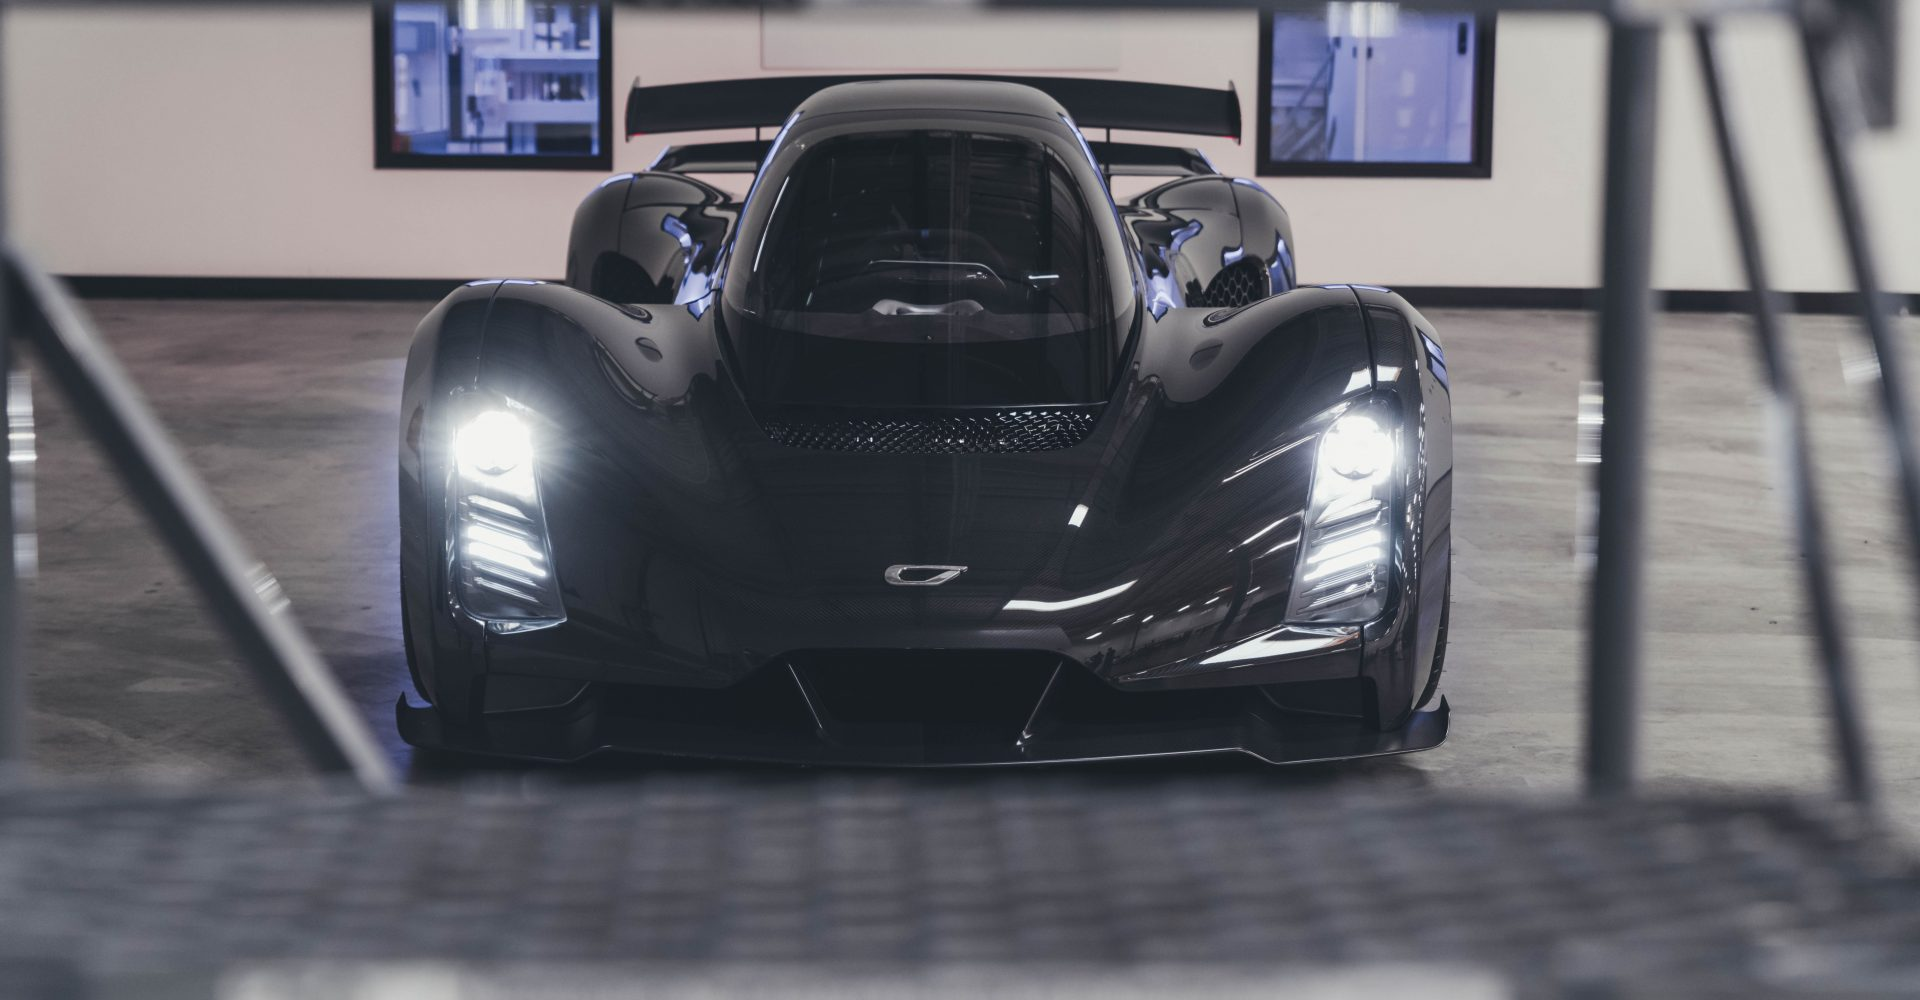 The Czinger 21C is a 270mph hypercar with a 3D-printed chassis